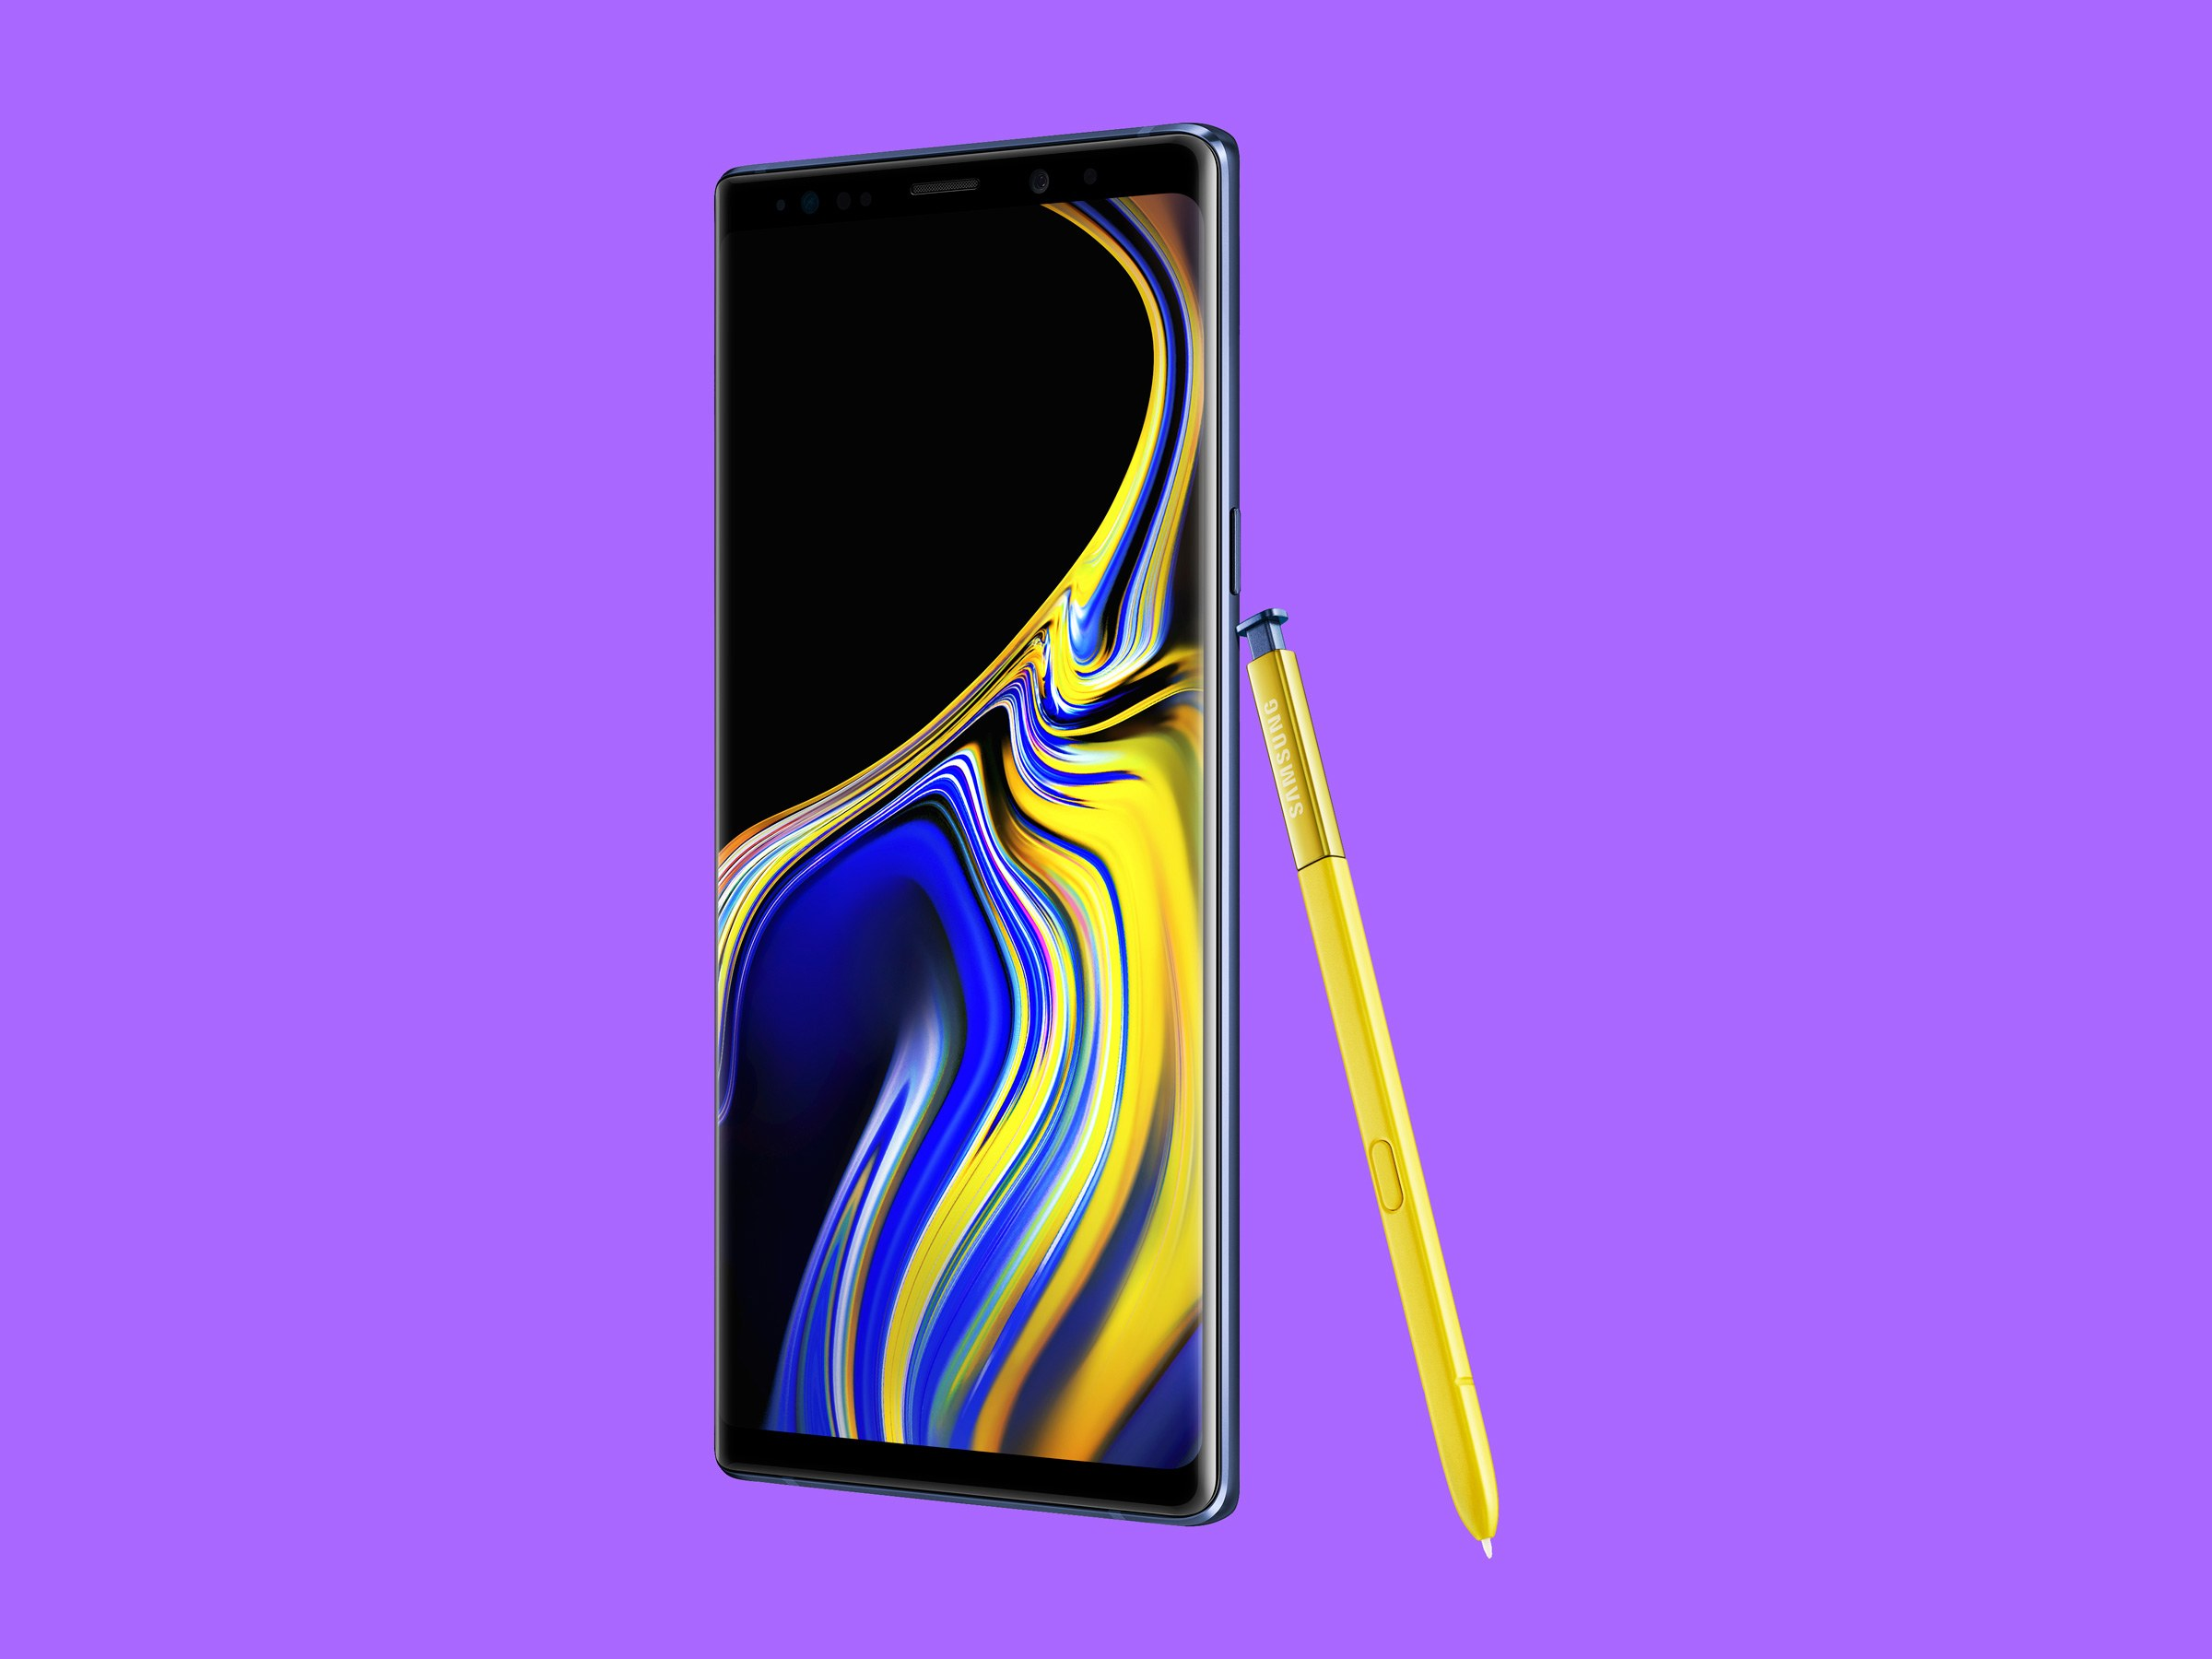 Samsung Galaxy Note 9 price in Saudi Arabia, UAE, Kuwait and